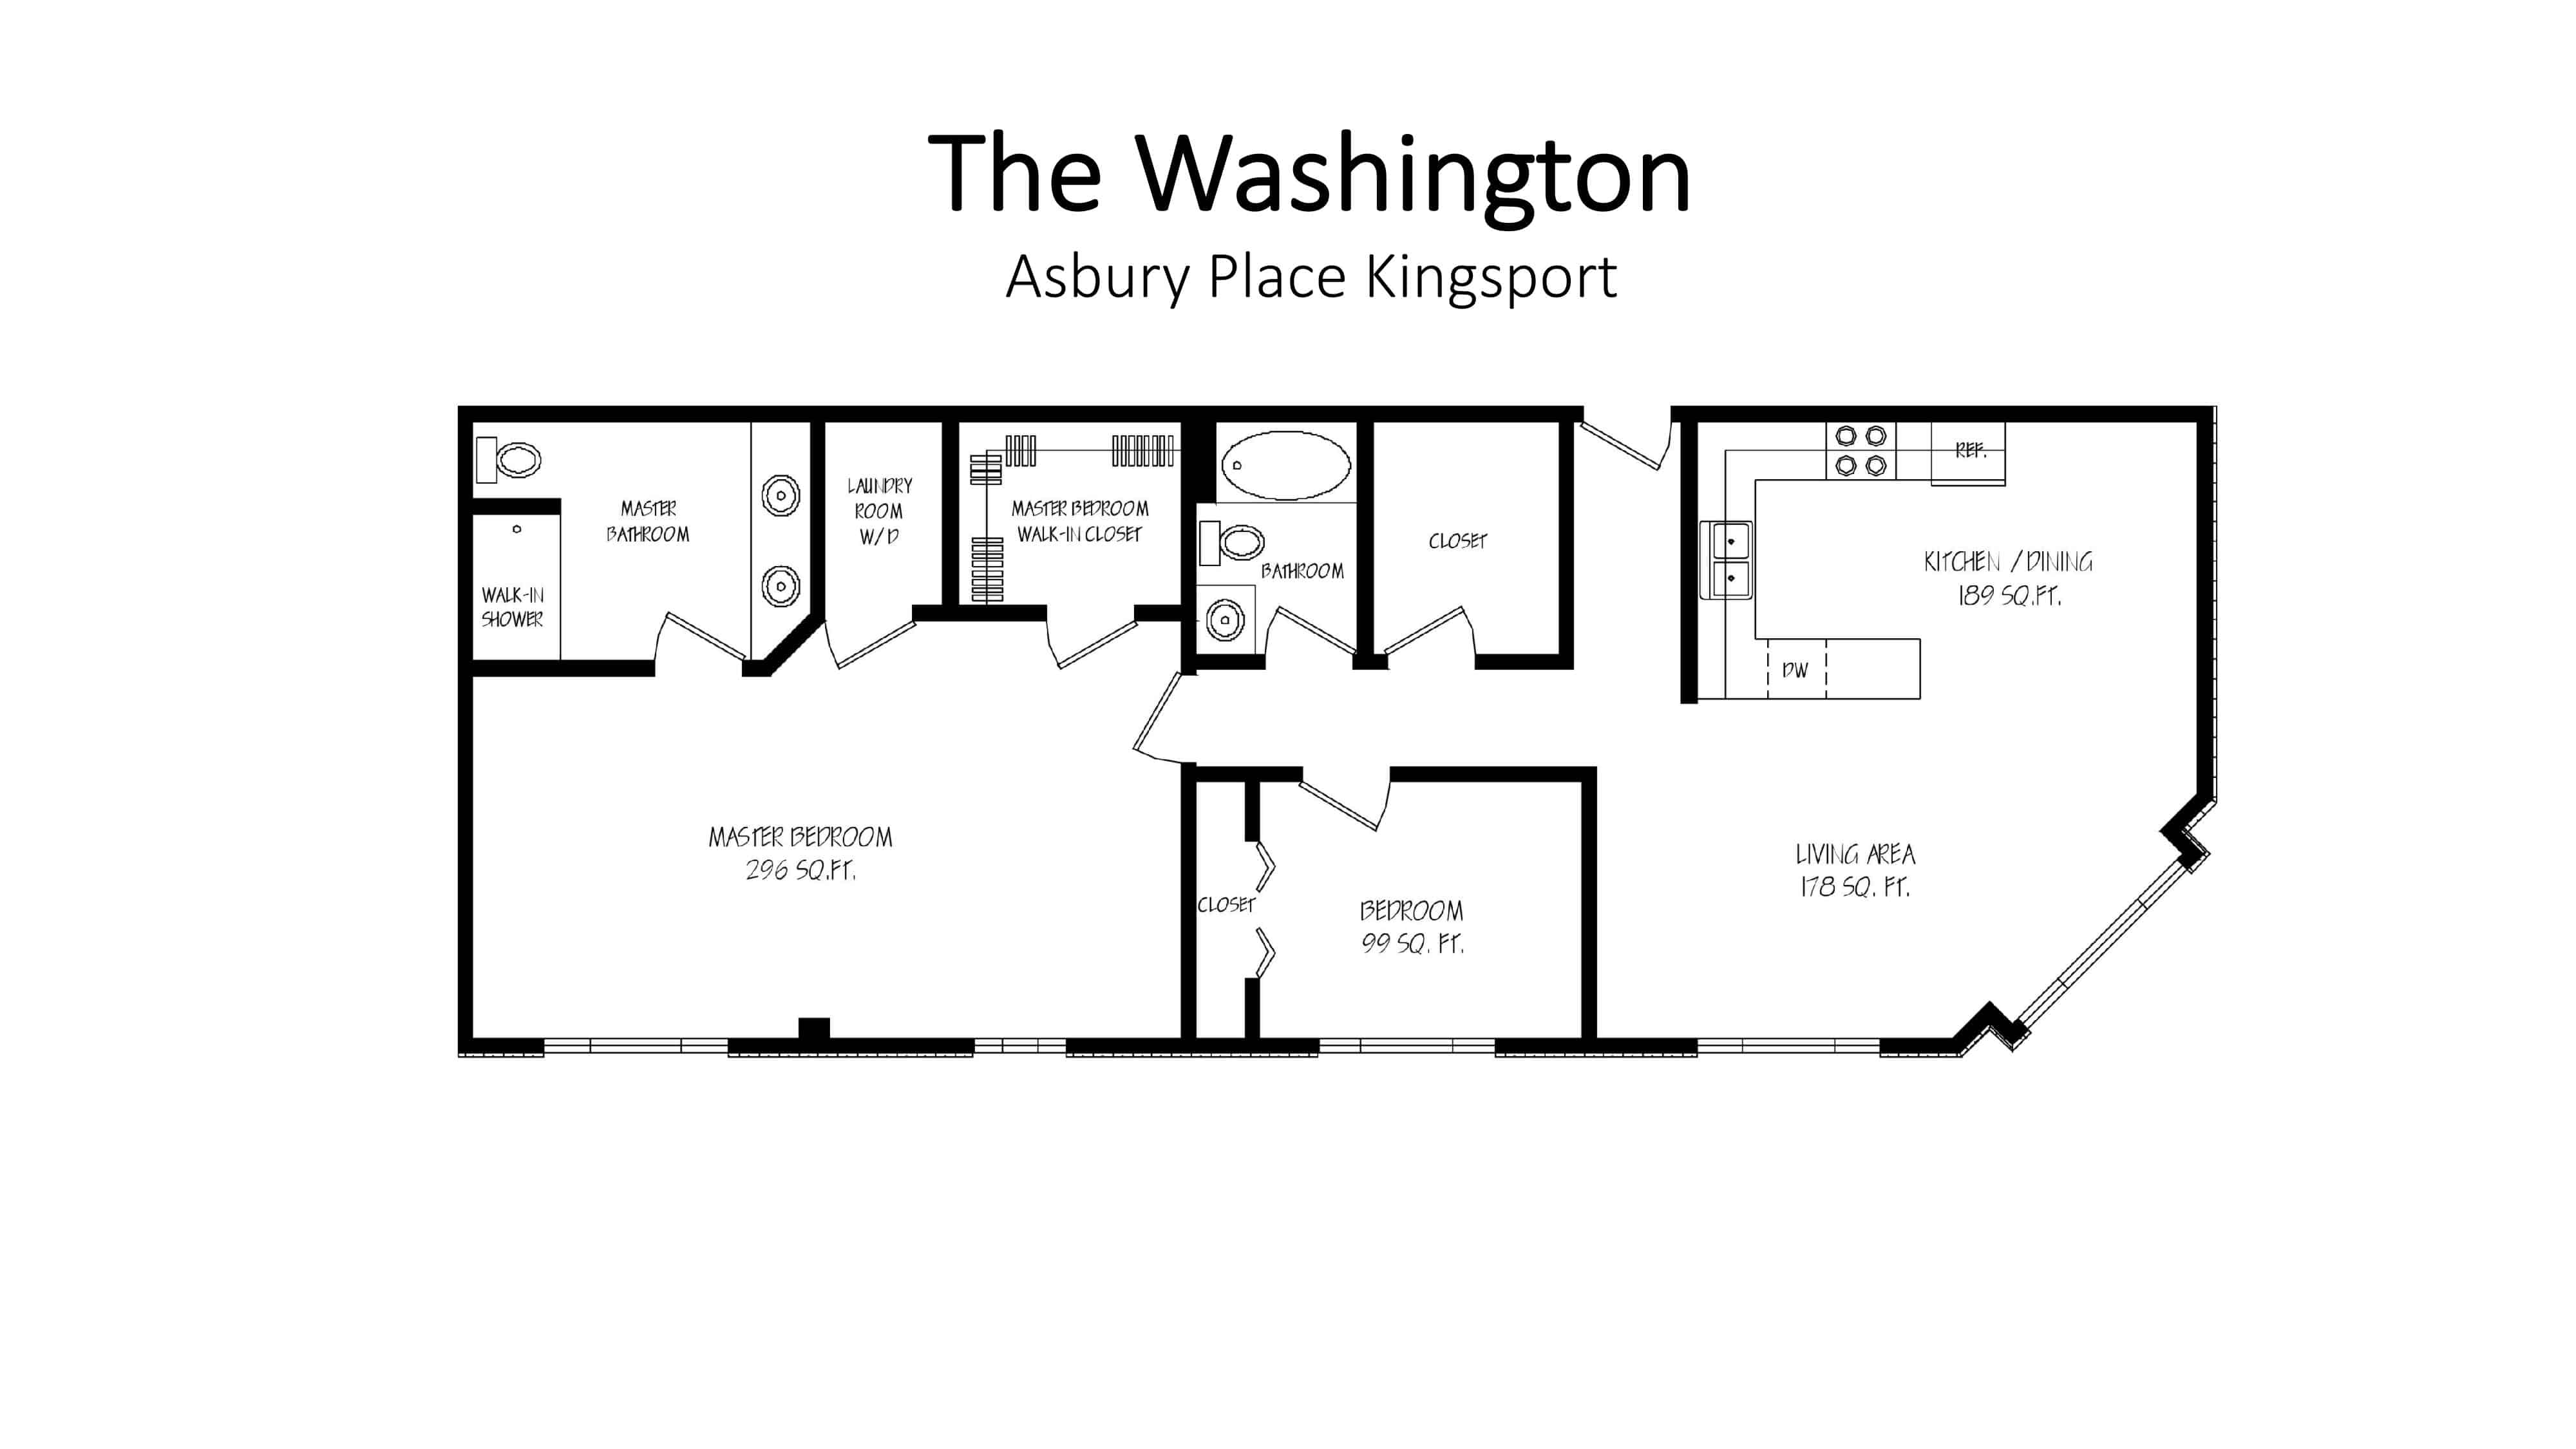 Asbury Place Kingsport The Washington Floorplan